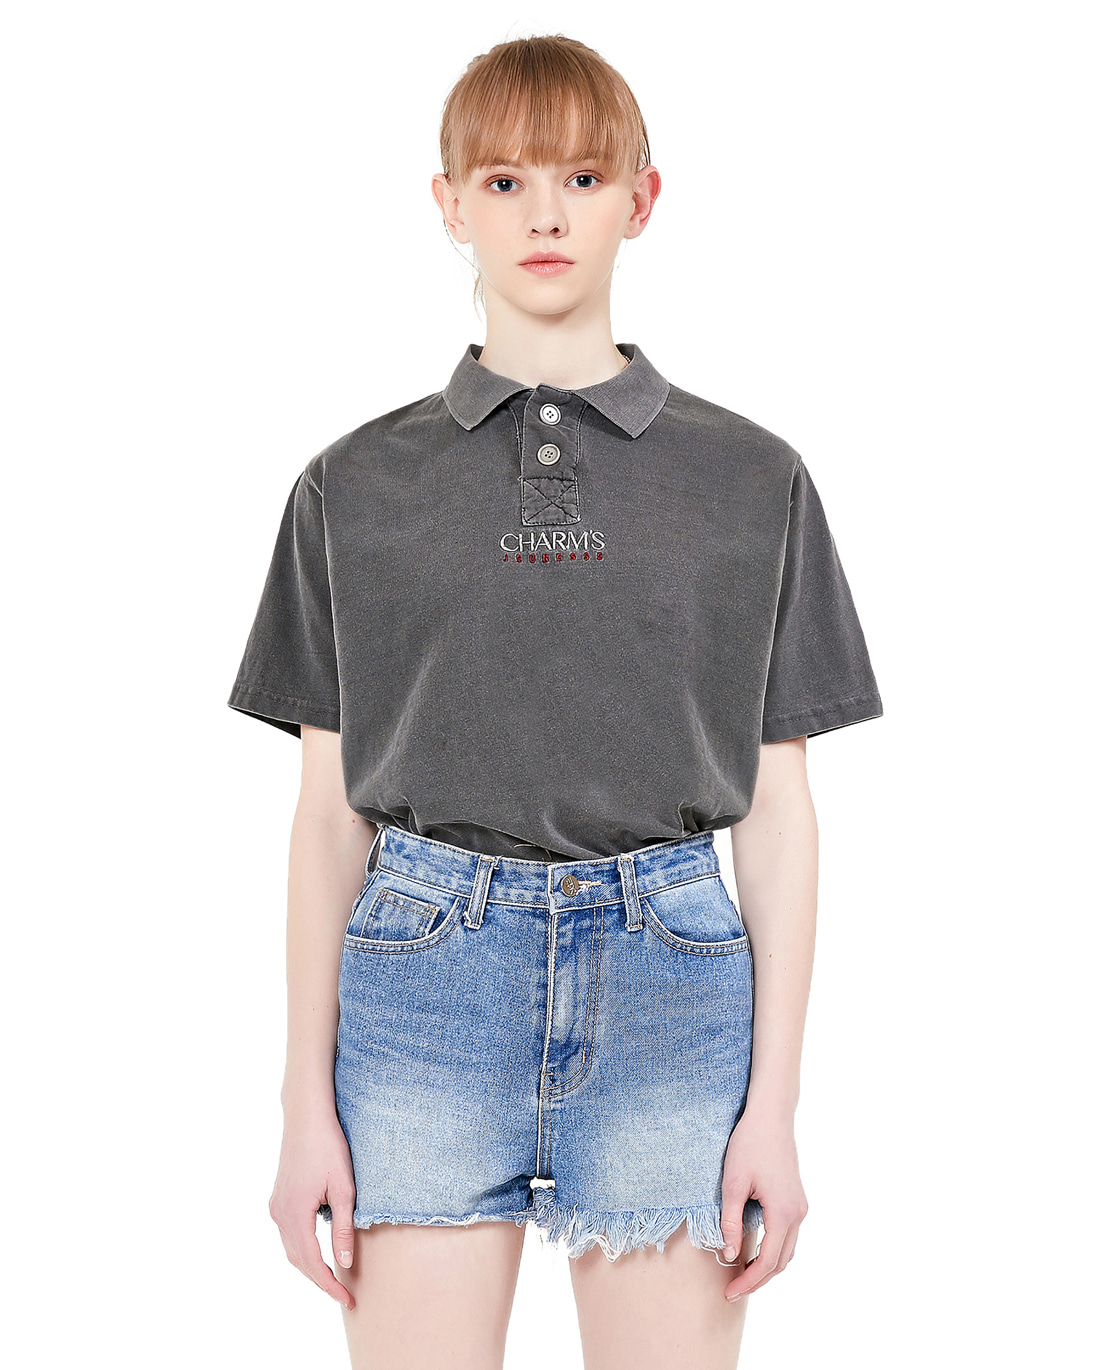 Jeunesse x Charms Short Sleeve Pique Tee Black